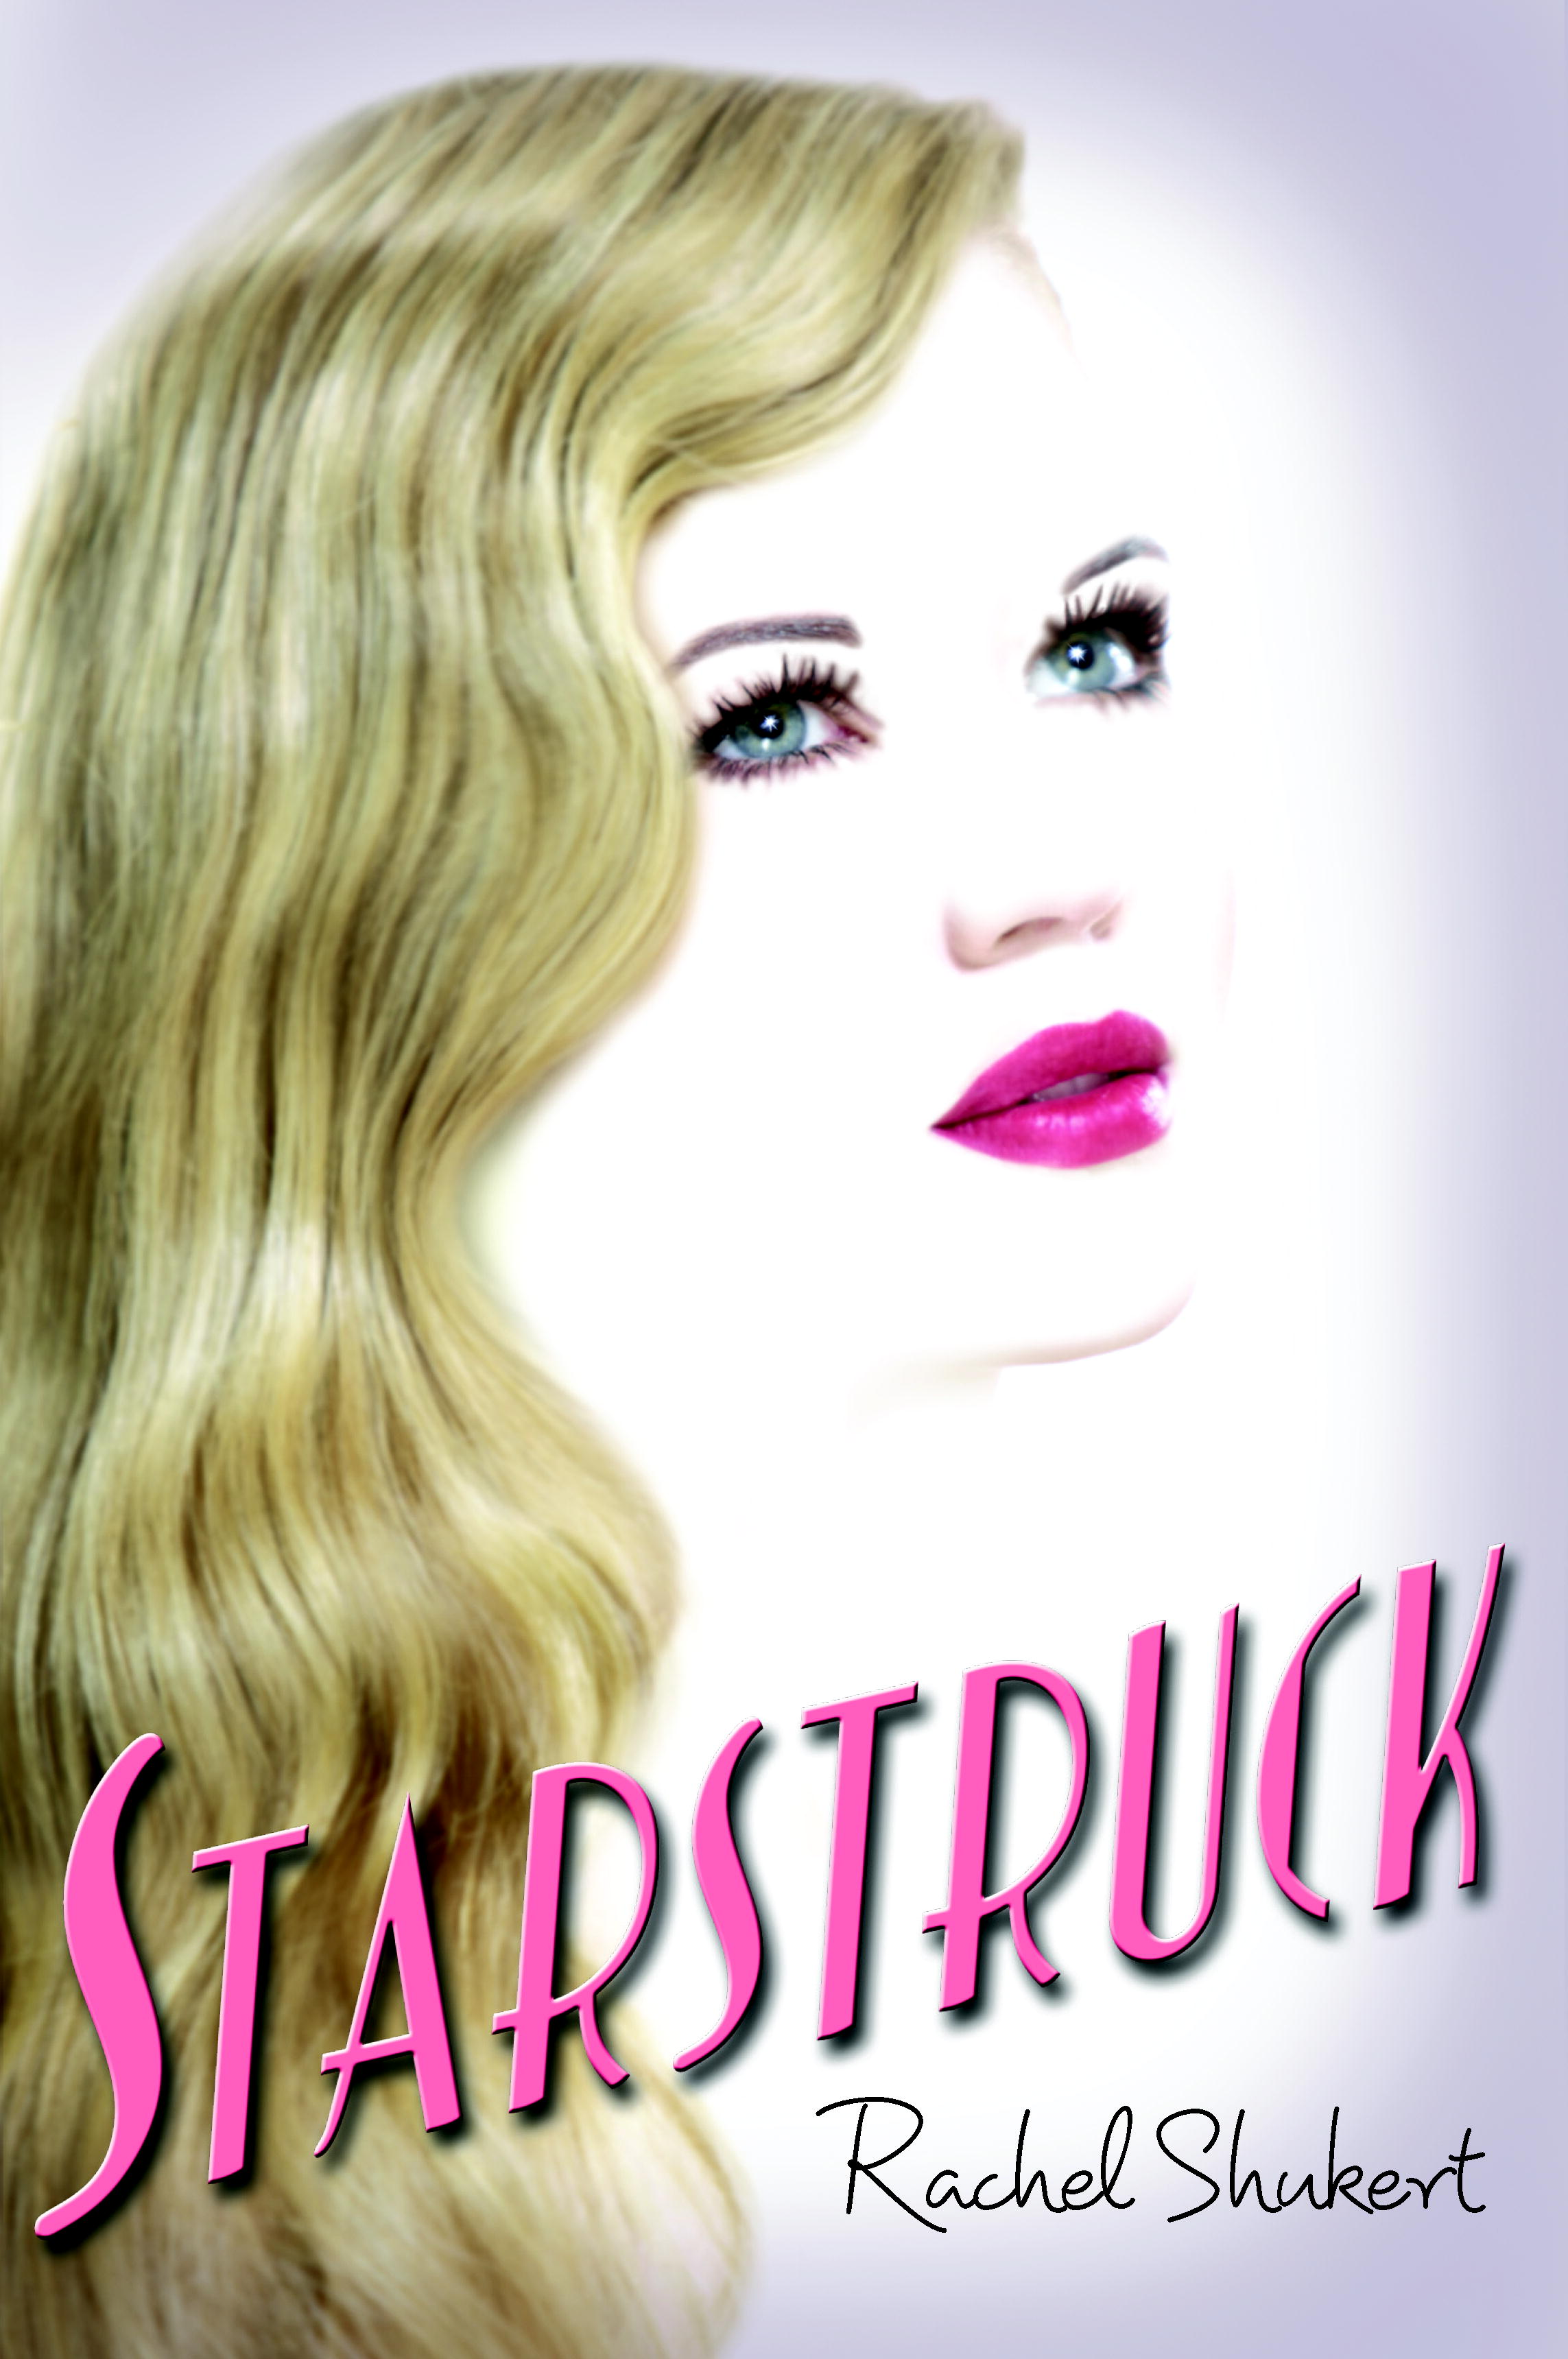 Book Launch: Starstruck by Rachel Shukert